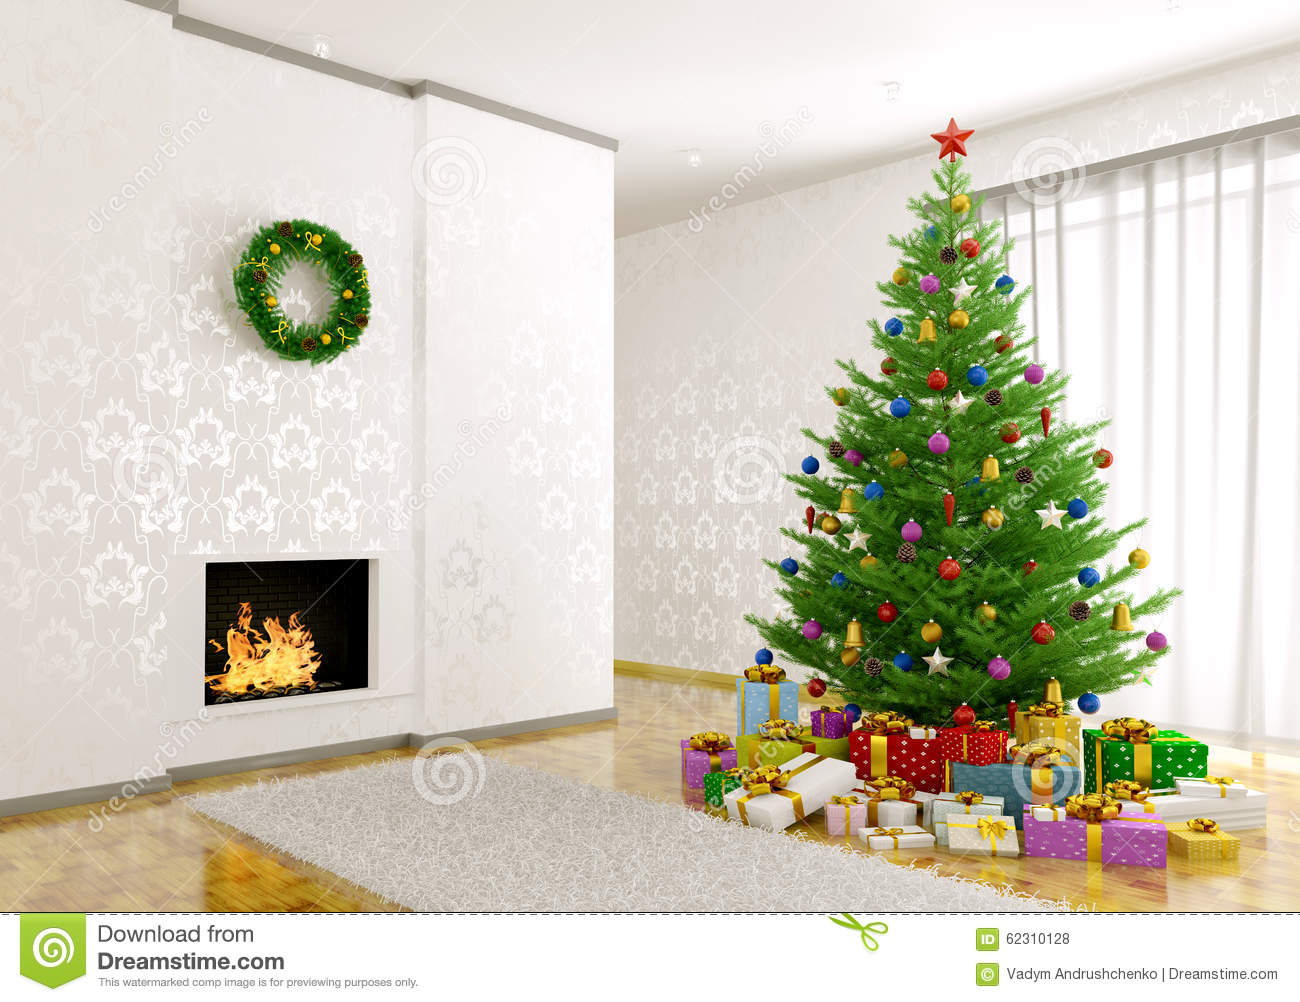 Christmas tree in living room interior 3d royalty free stock image 16910548 for Christmas tree in the living room